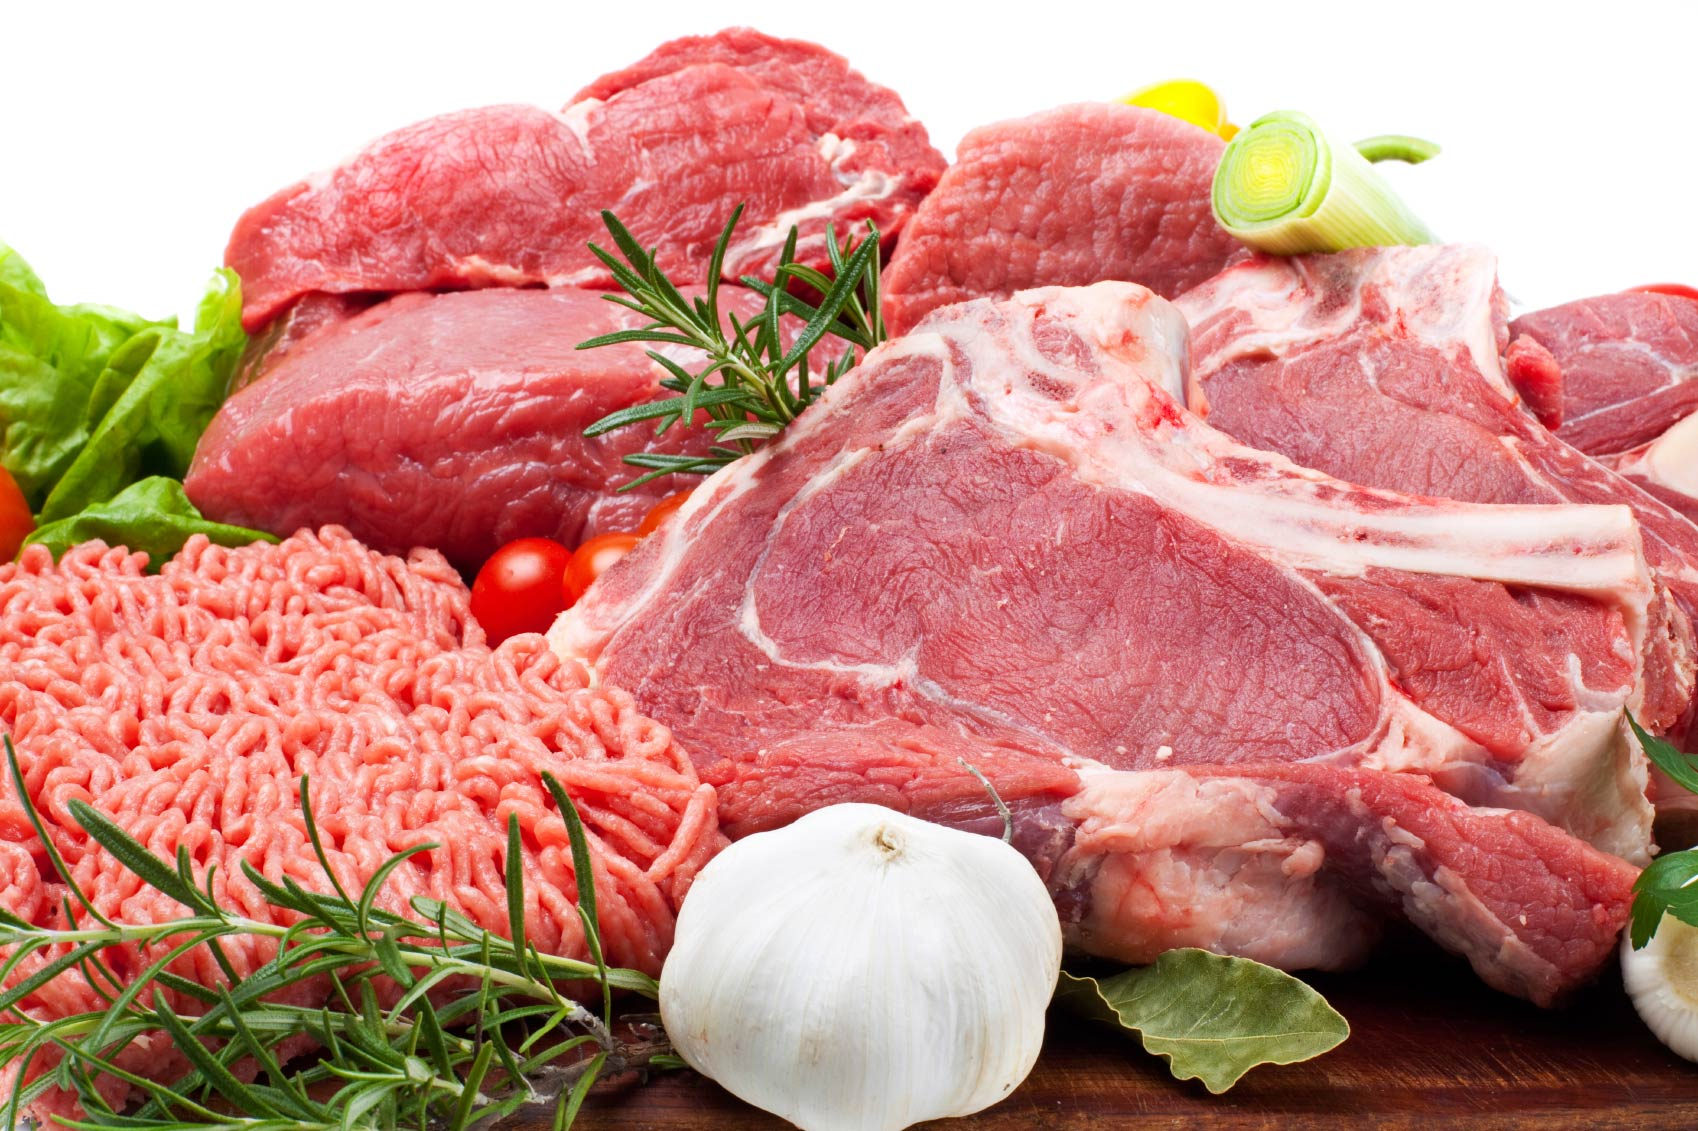 Canyon Wholesale Provisions - your best choice for all types of meat